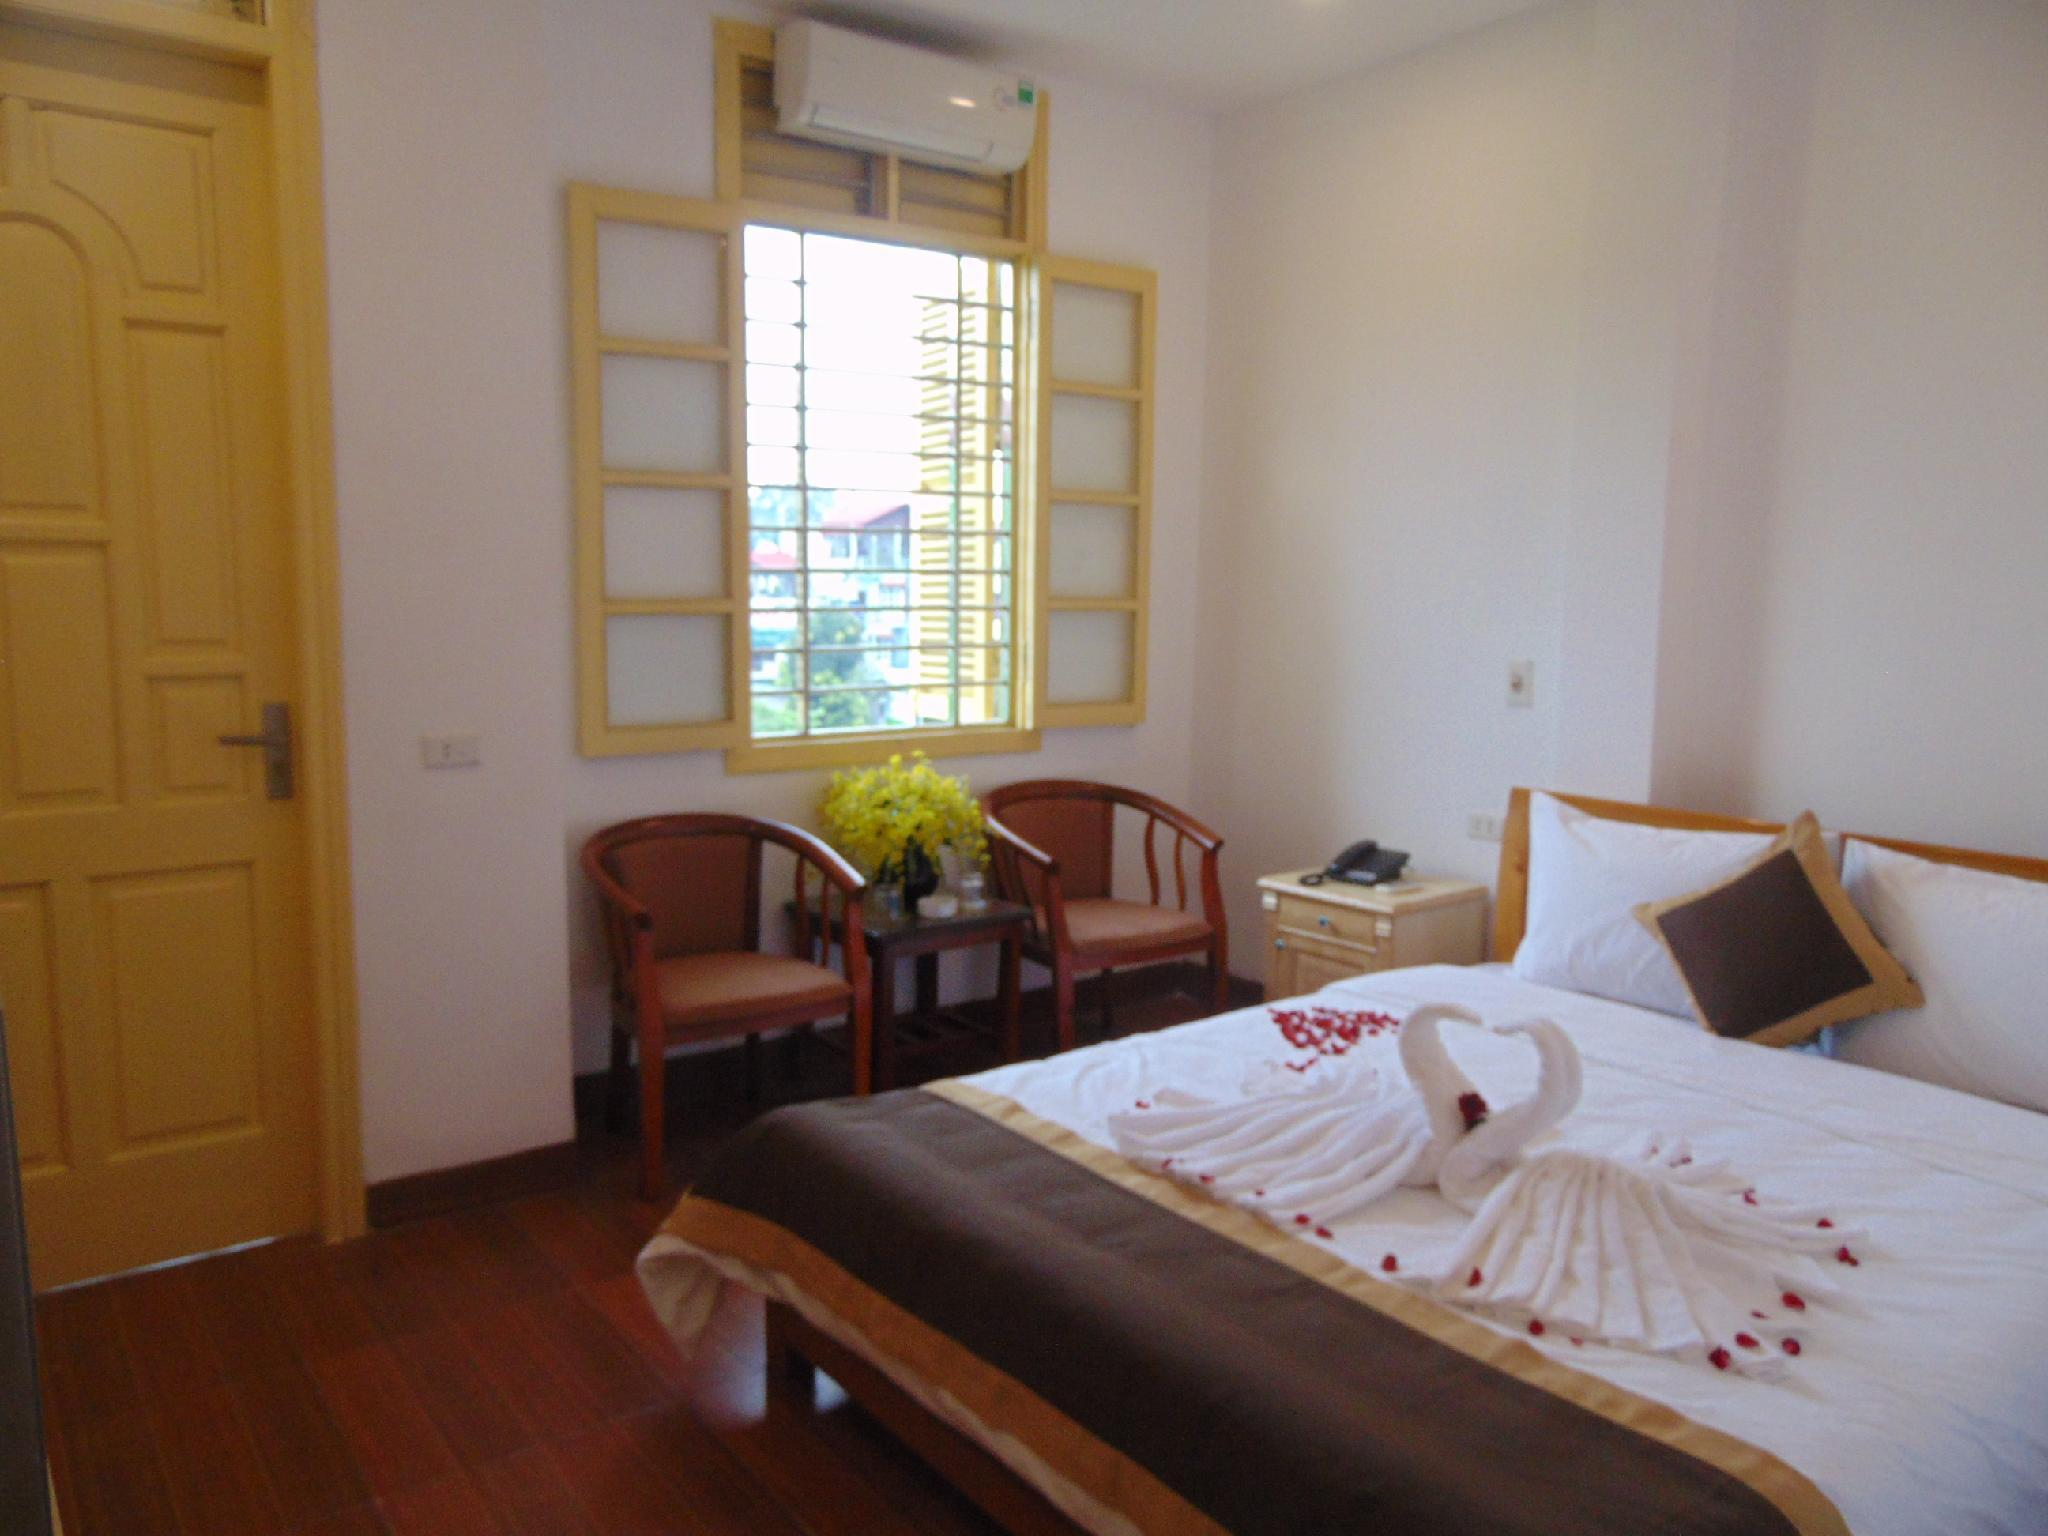 Thanh Huong Airport Hotel